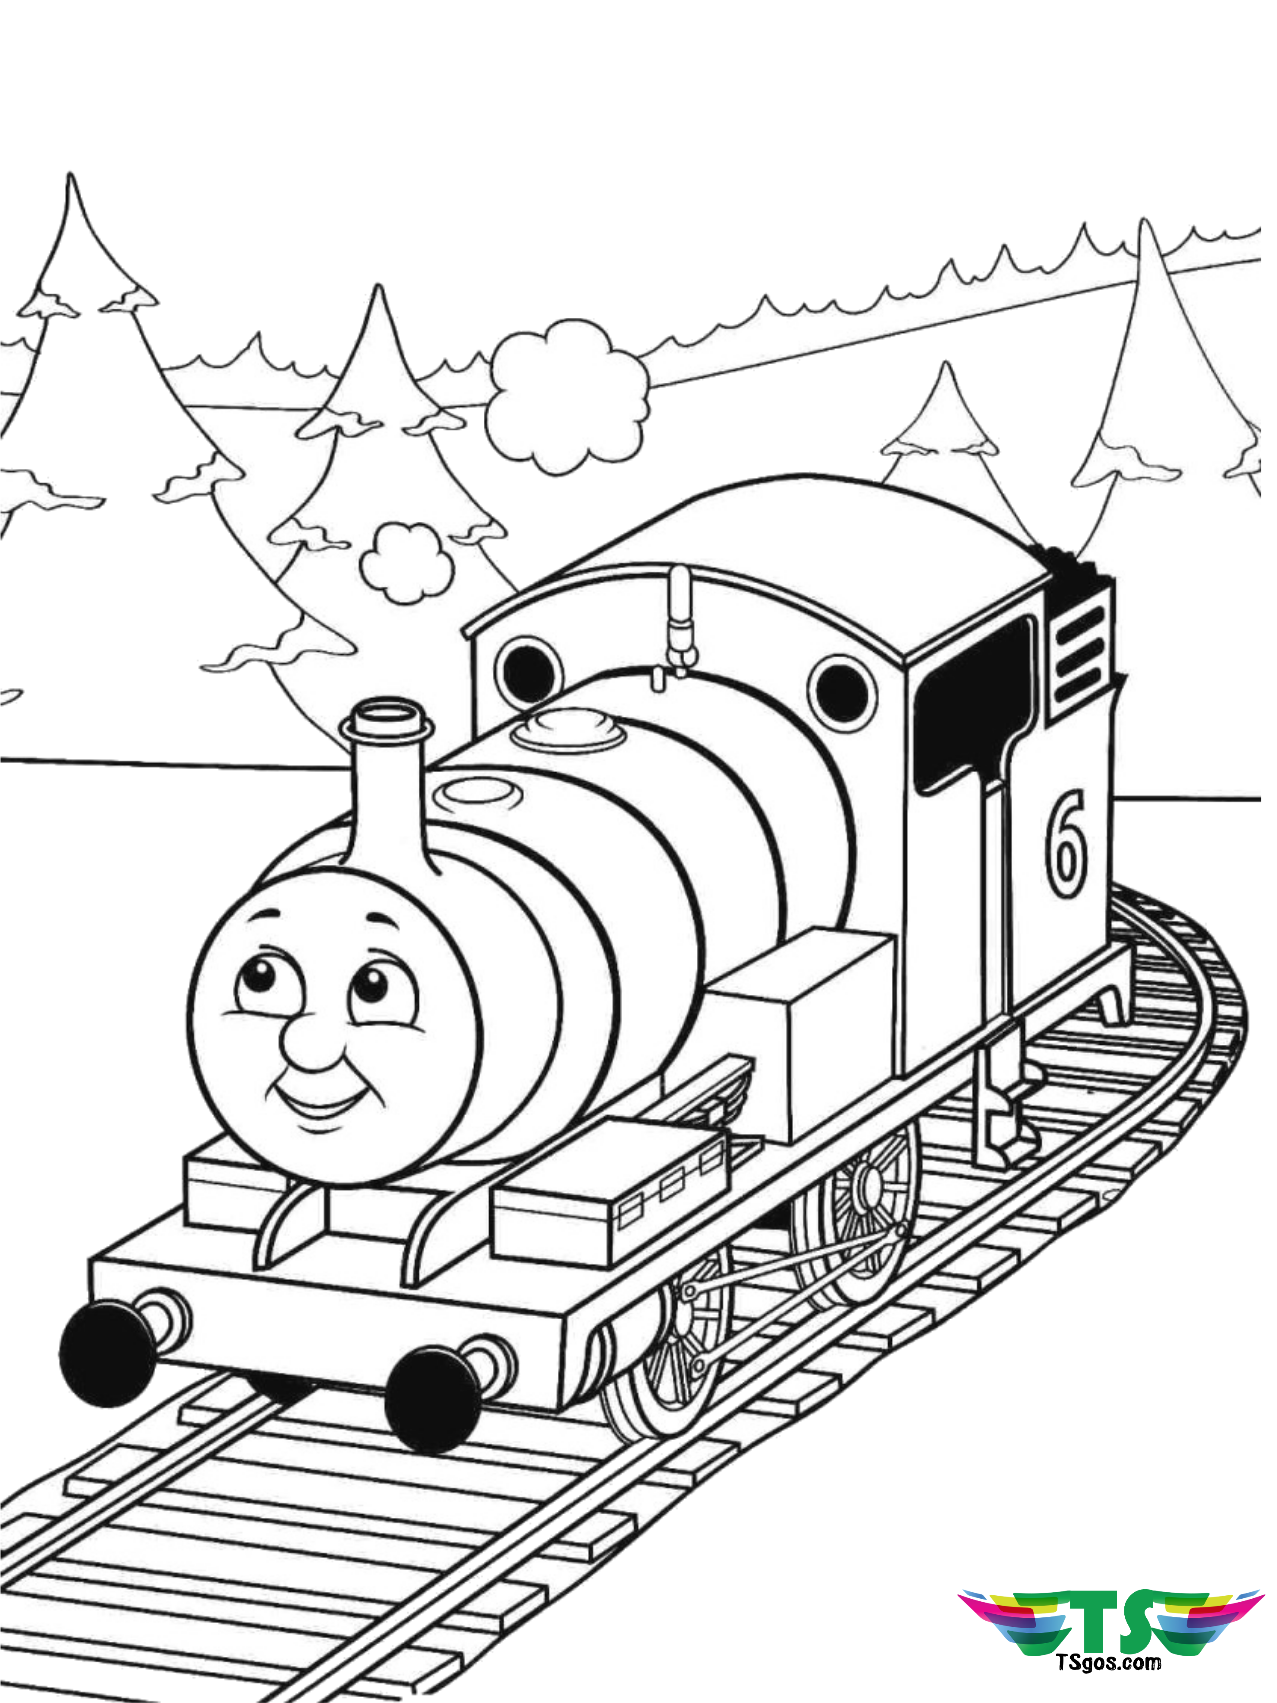 coloring train freight train coloring pages at getdrawings free download coloring train